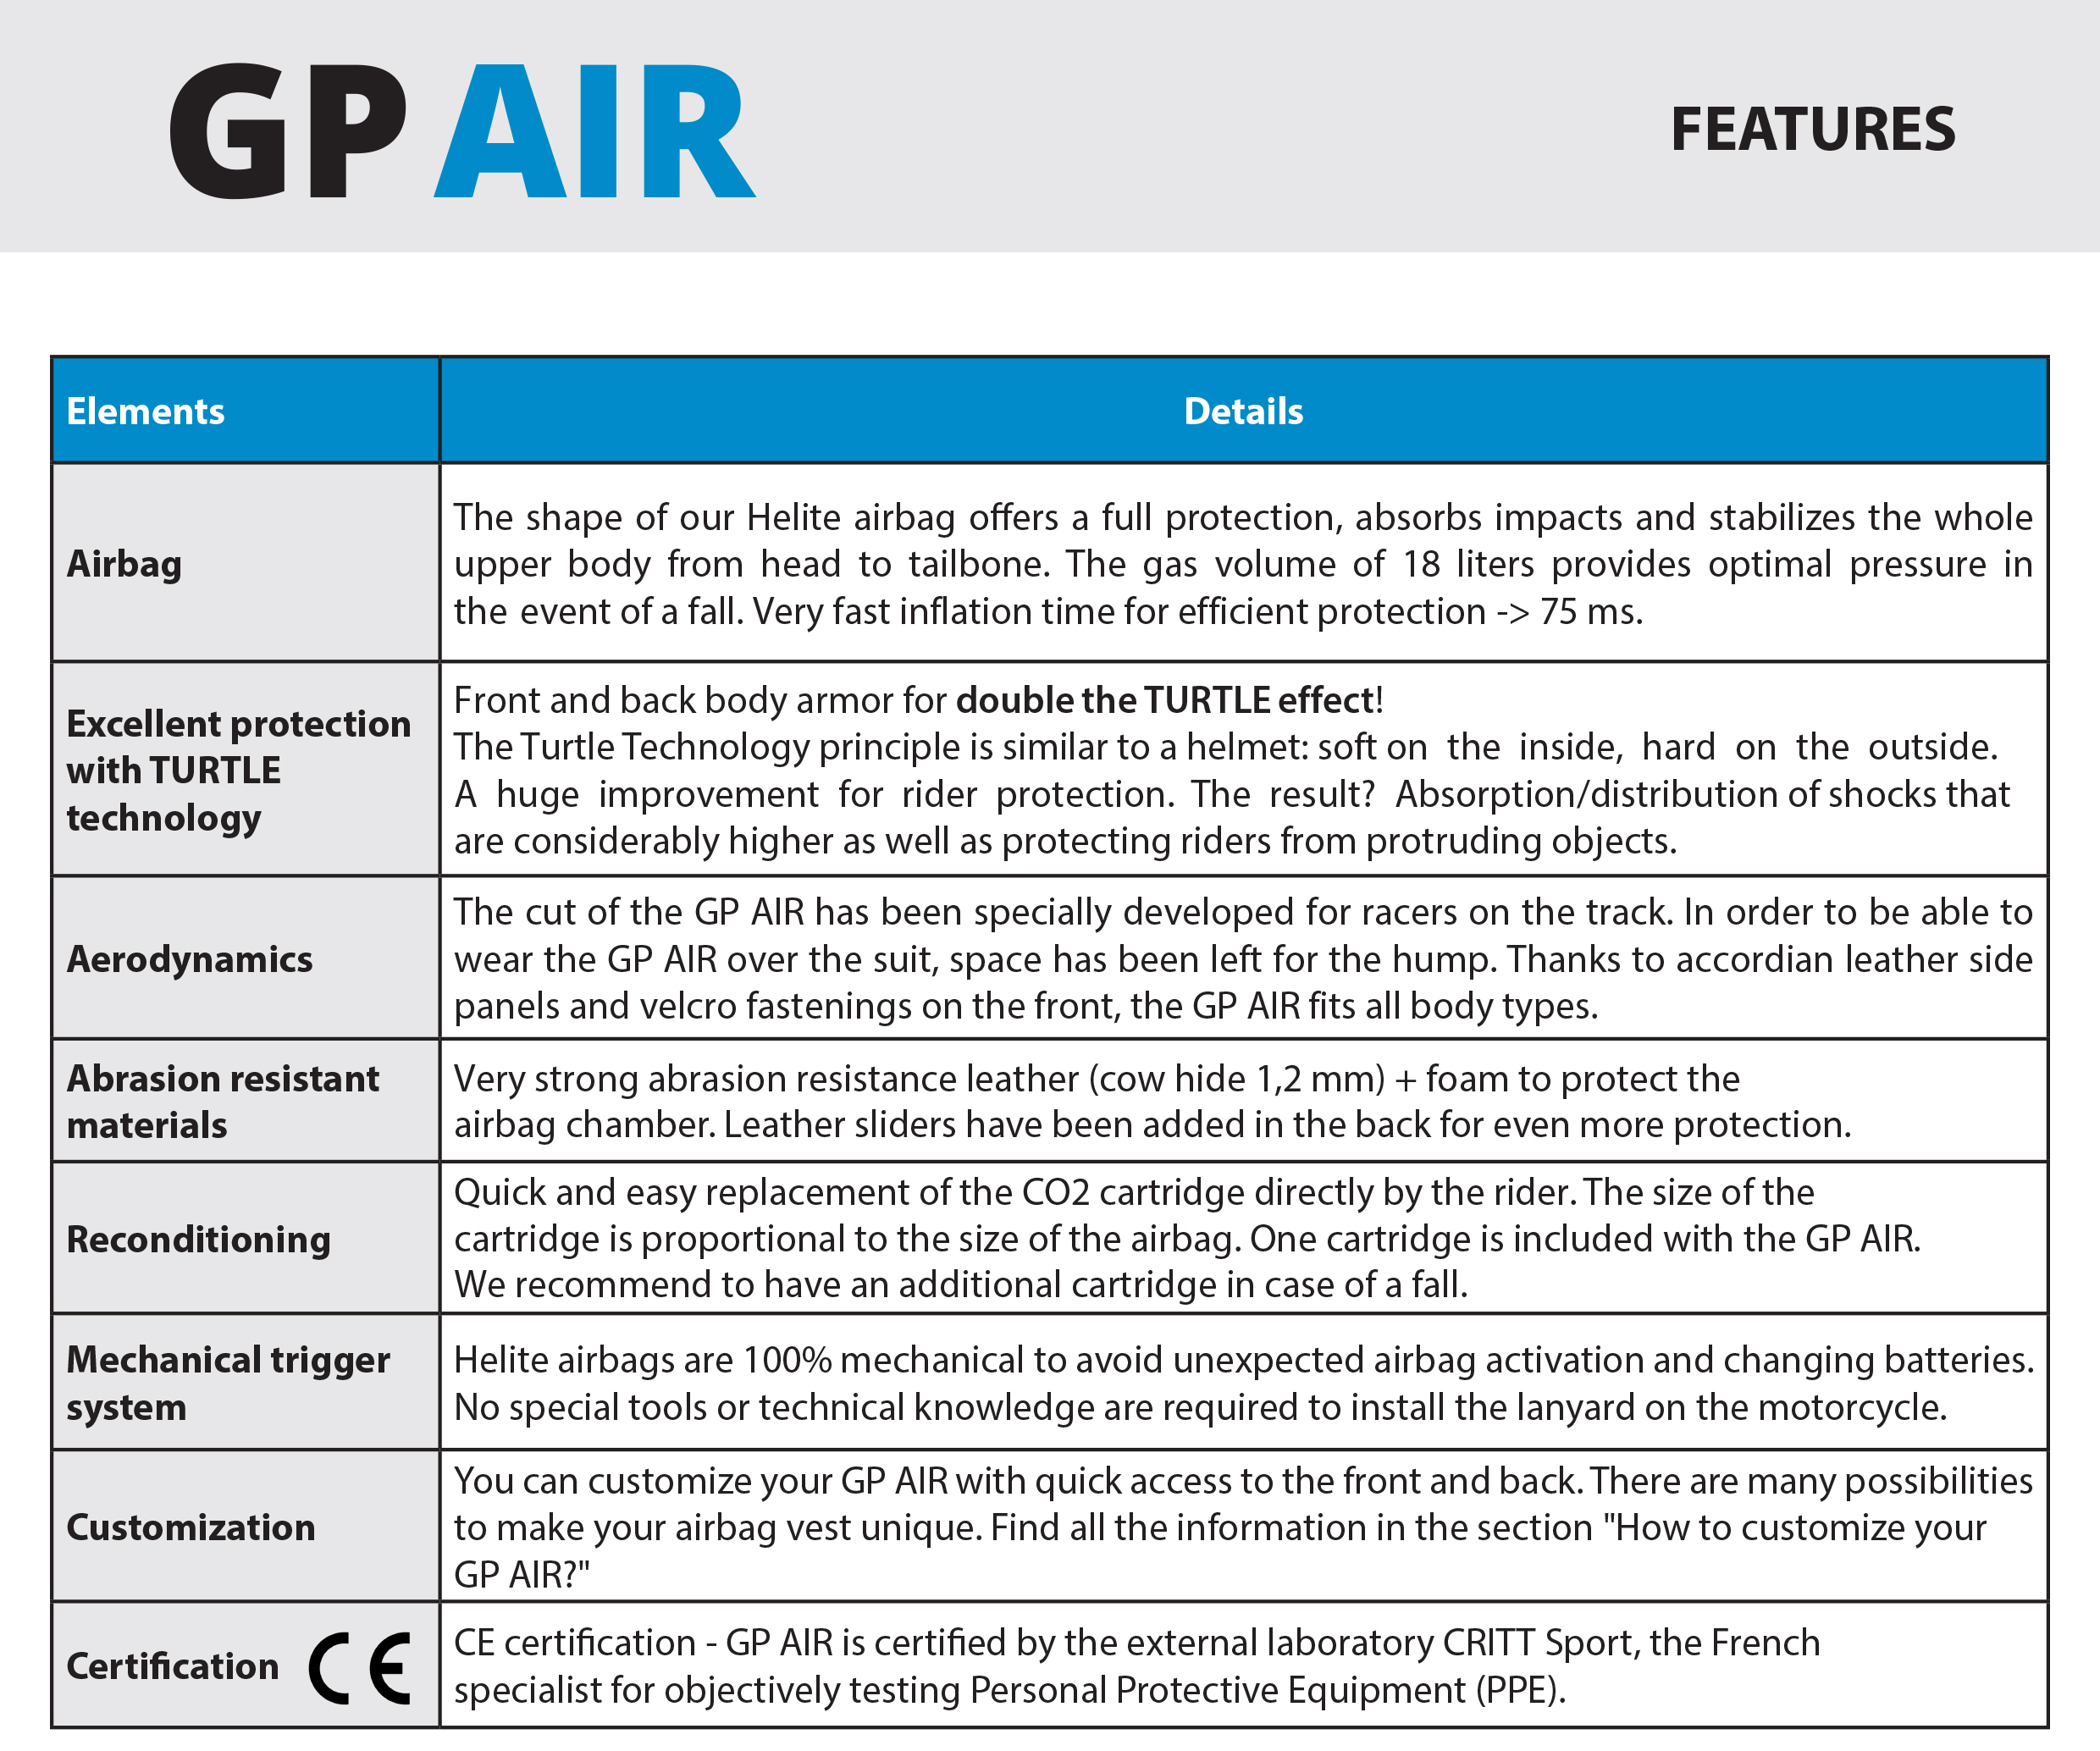 newsletter-gp-air-2018-en-features.jpg